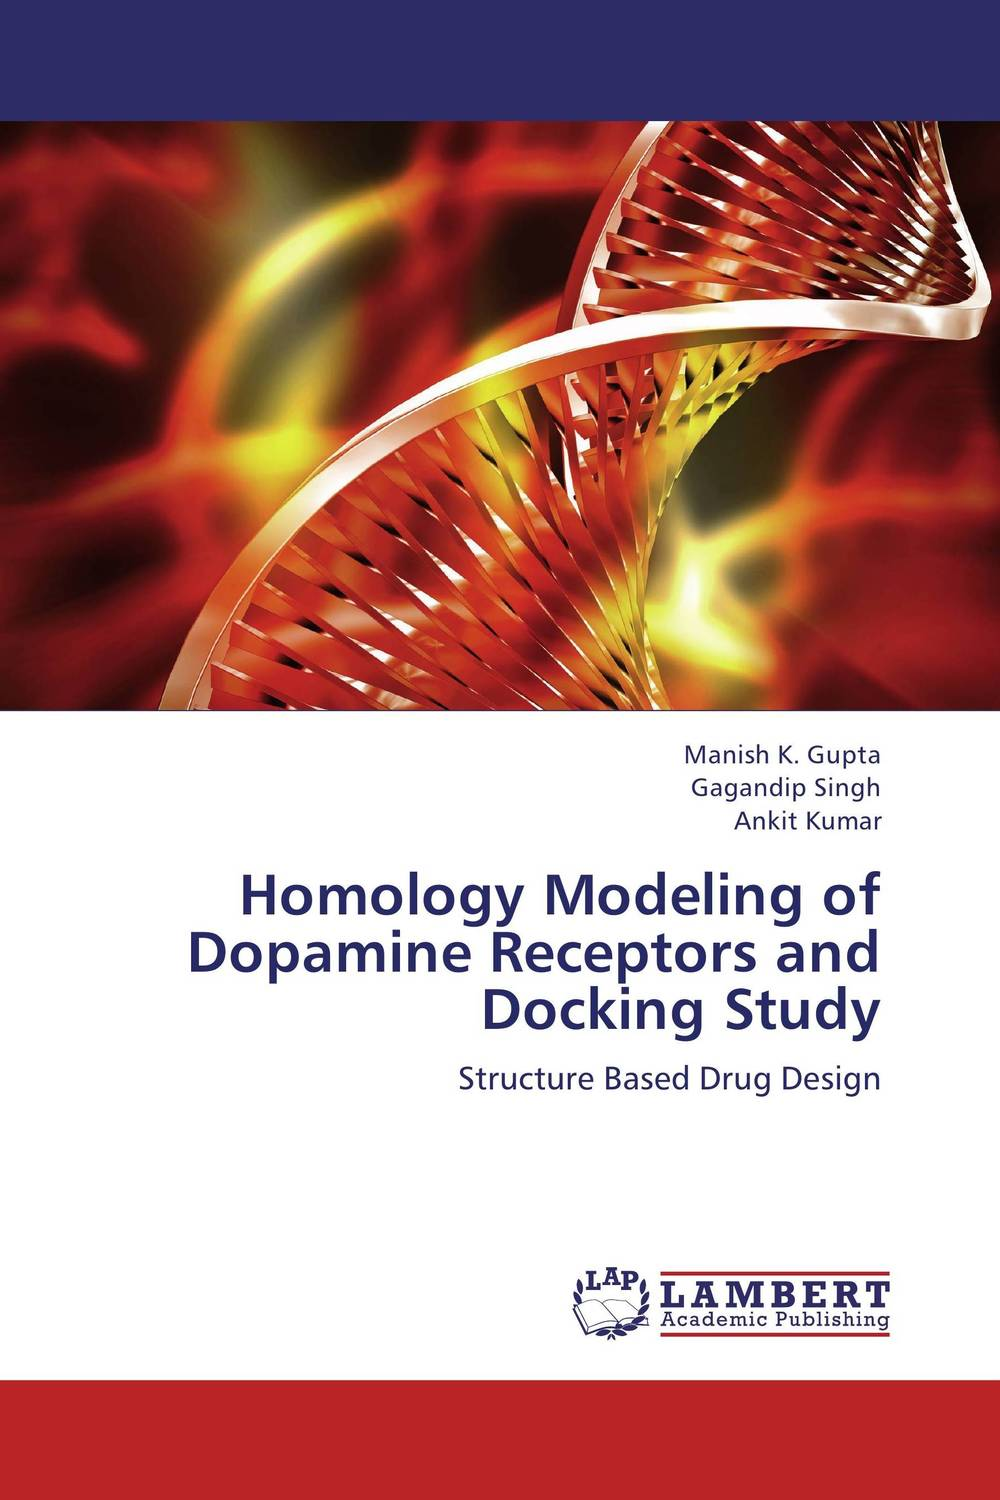 Homology Modeling of Dopamine Receptors and Docking Study nitin chitranshi molecular modeling docking and 3d qsar studies of mtb tnmo enzyme